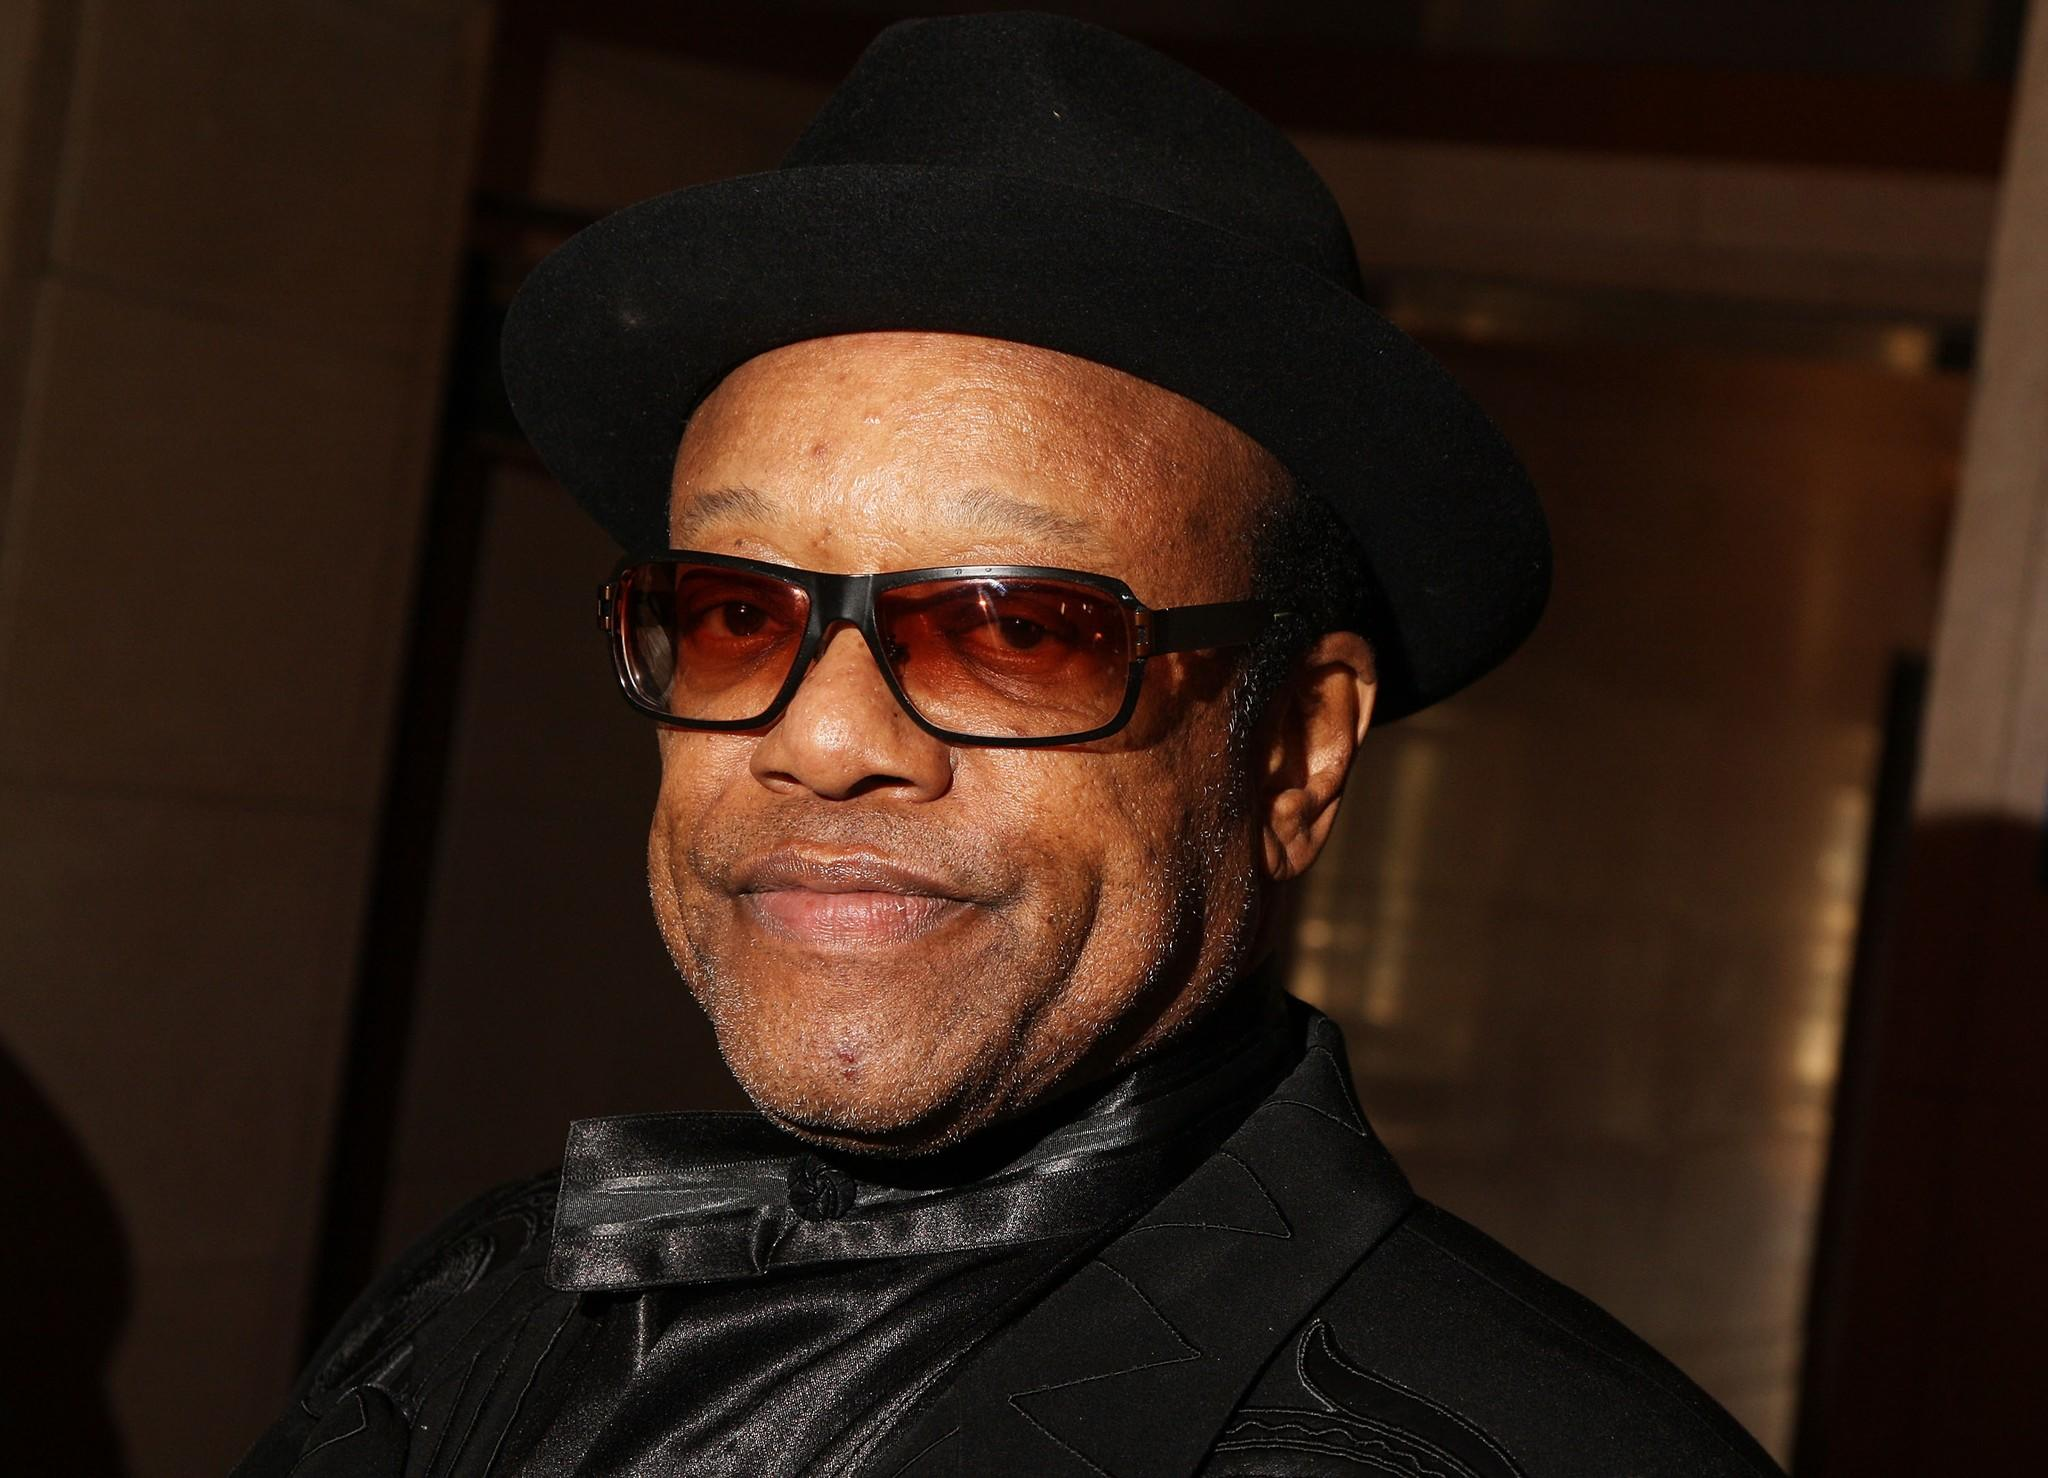 Soul singer Bobby Womack died on June 27, 2014. He was suffering from colon cancer and diabetes at the time of his death. He was 70 years old.